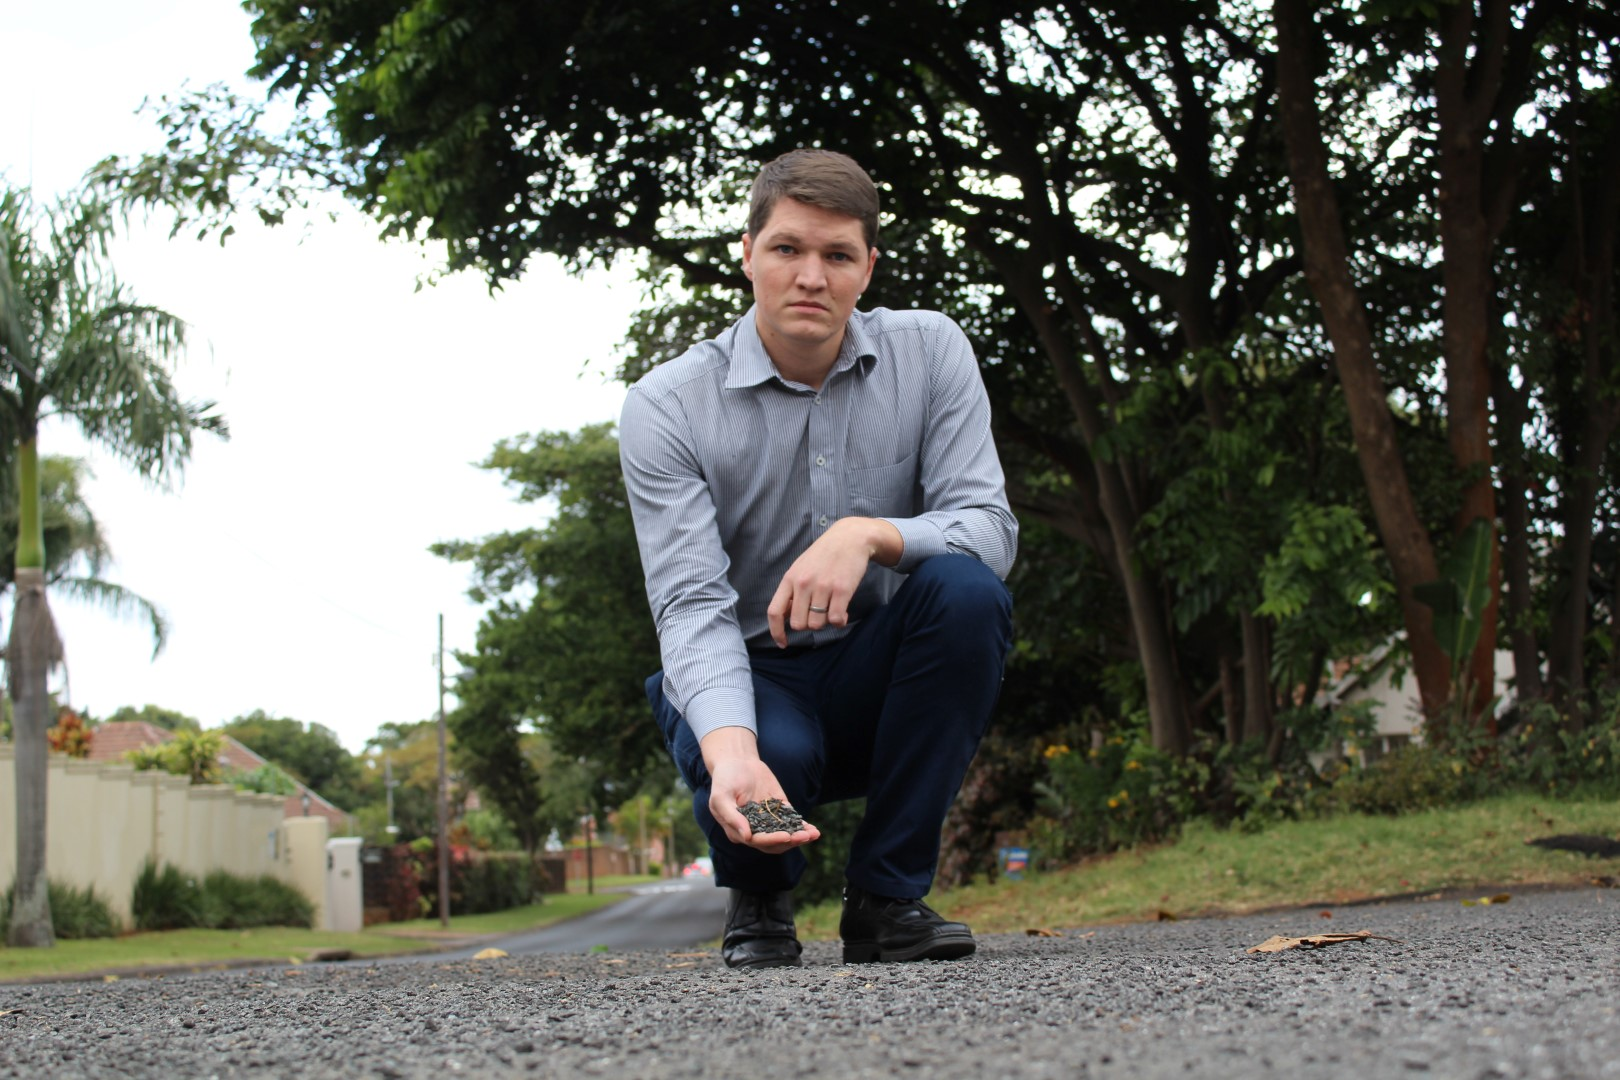 Durban North ward councillor, Shaun Ryley holds up some of the loose stones left behind in the recent resurfacing of several roads in north Durban.